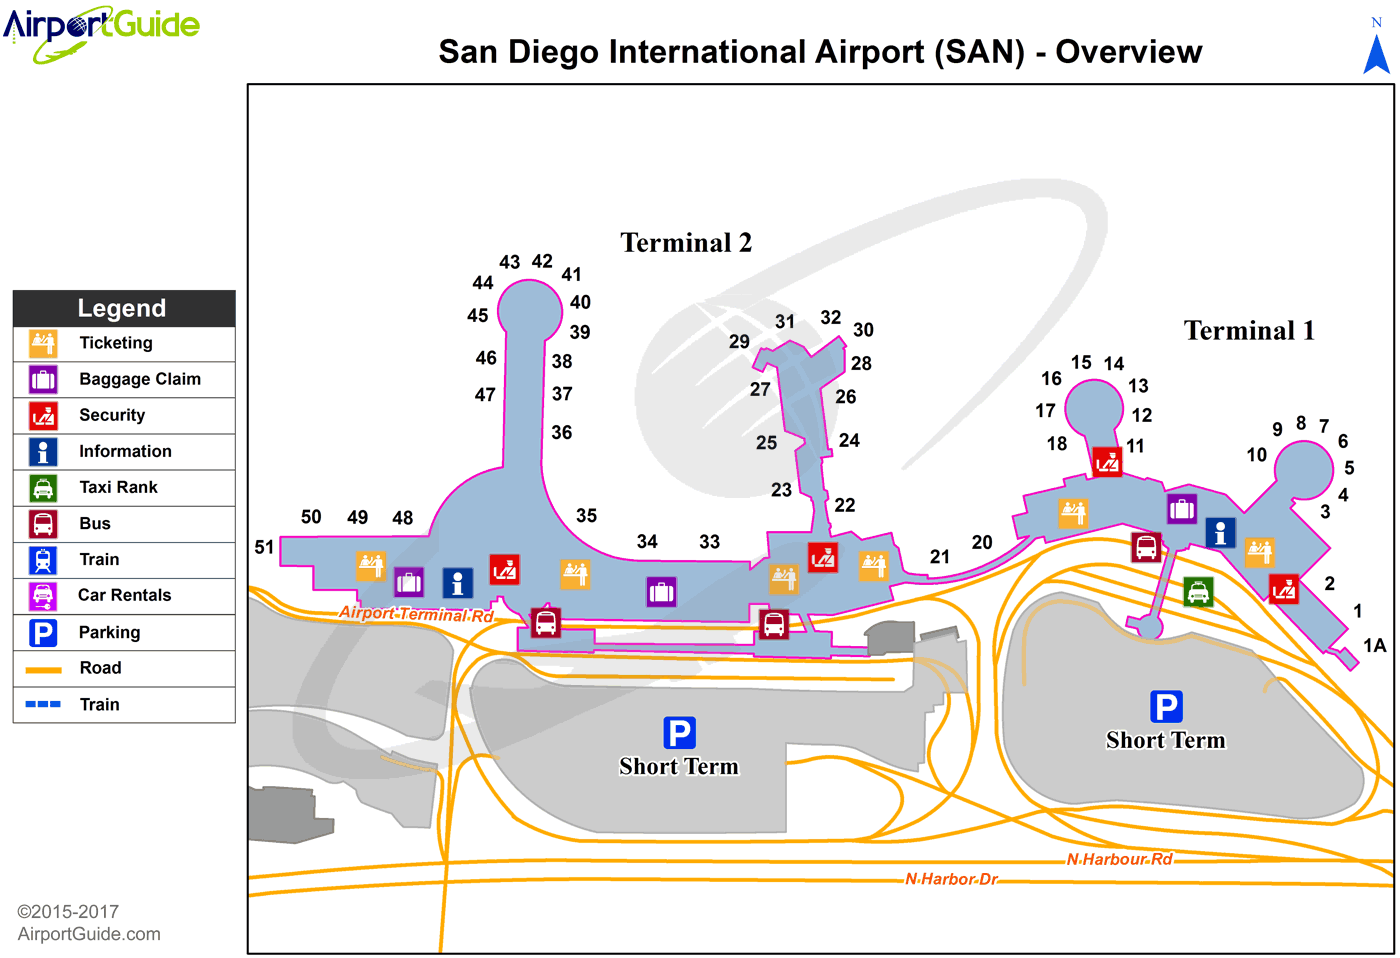 San Diego Airport Terminal Map San Diego   San Diego International (SAN) Airport Terminal Maps